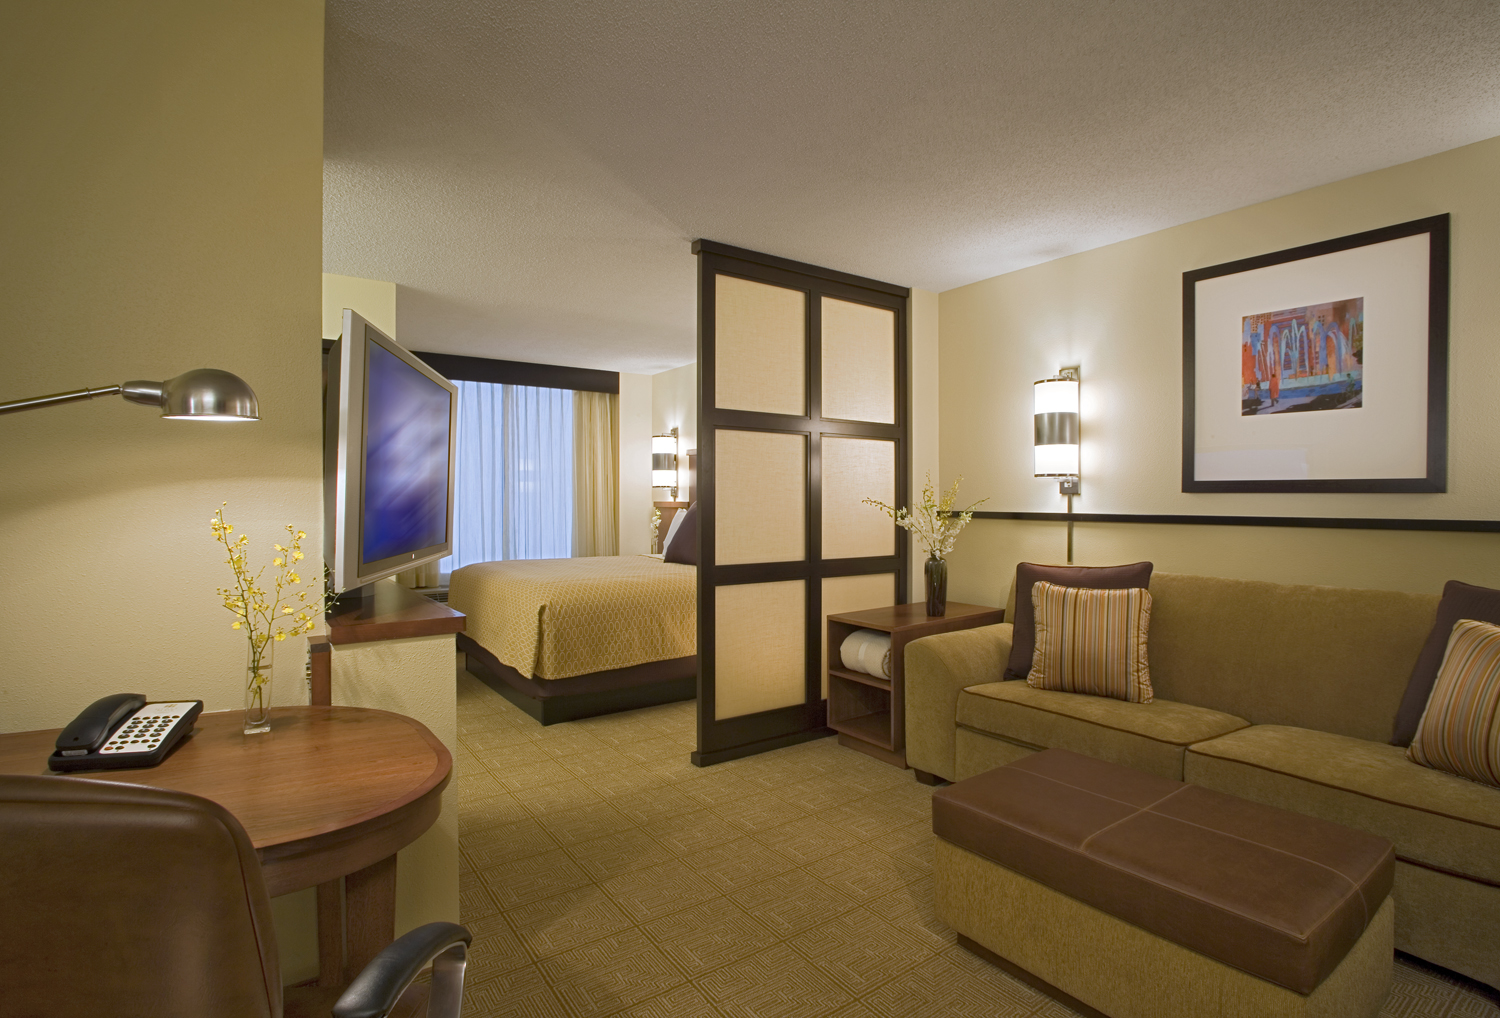 http://memorialcoliseum.com/images/Images/Where_to_Stay_Images/Hyatt_Place/King_Guest_Room.jpg